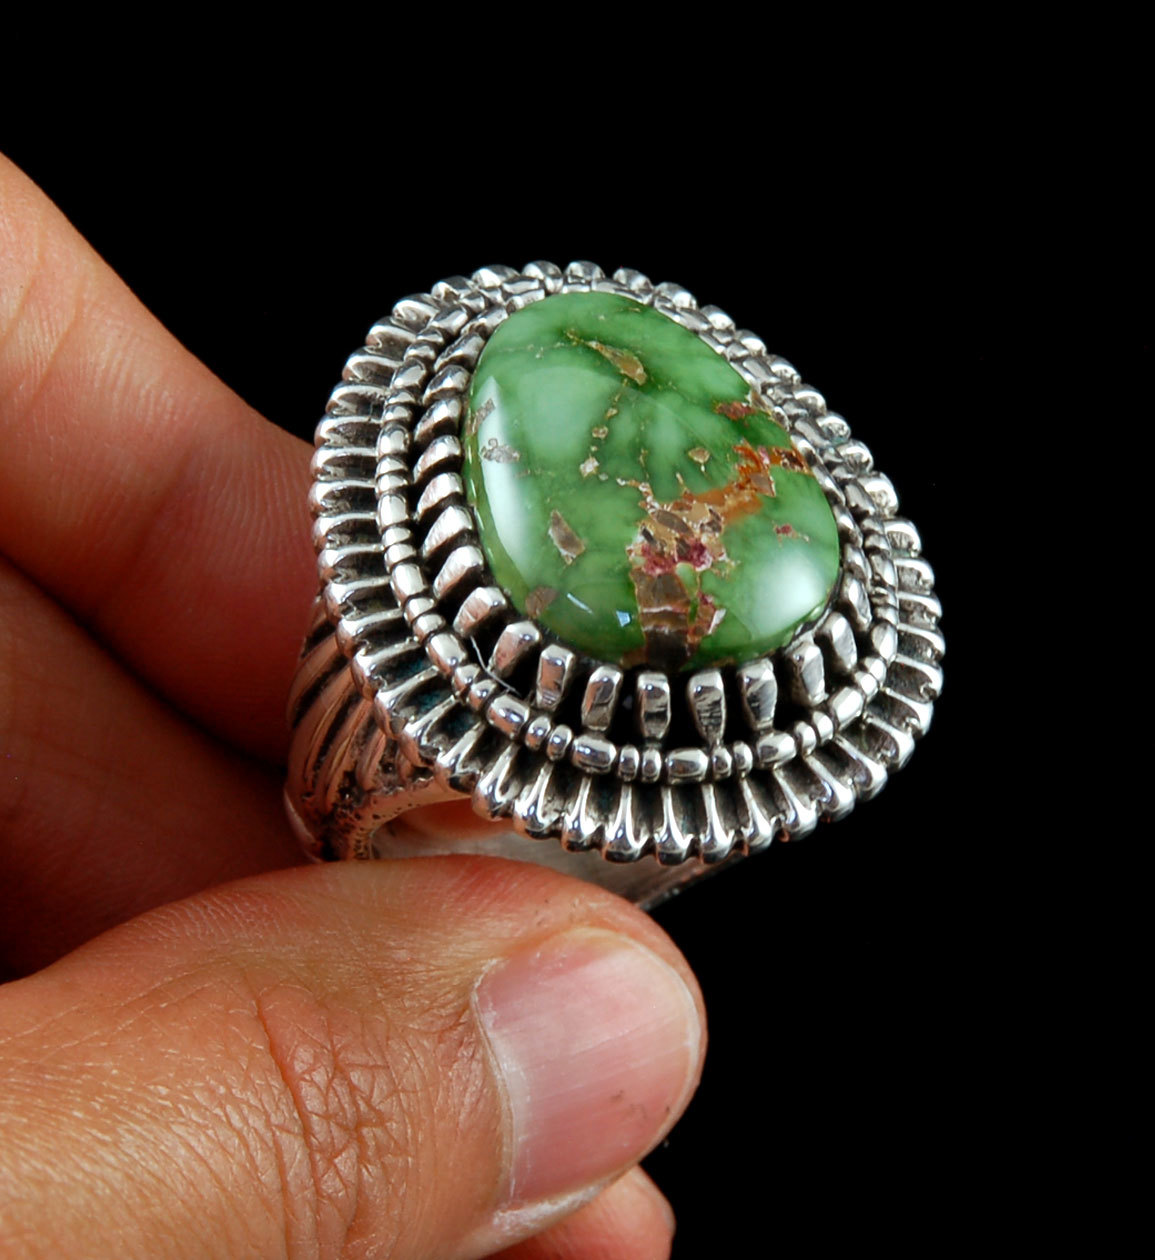 Sterling Silver statement ring with Carico Lake Turquoise by John Hartman